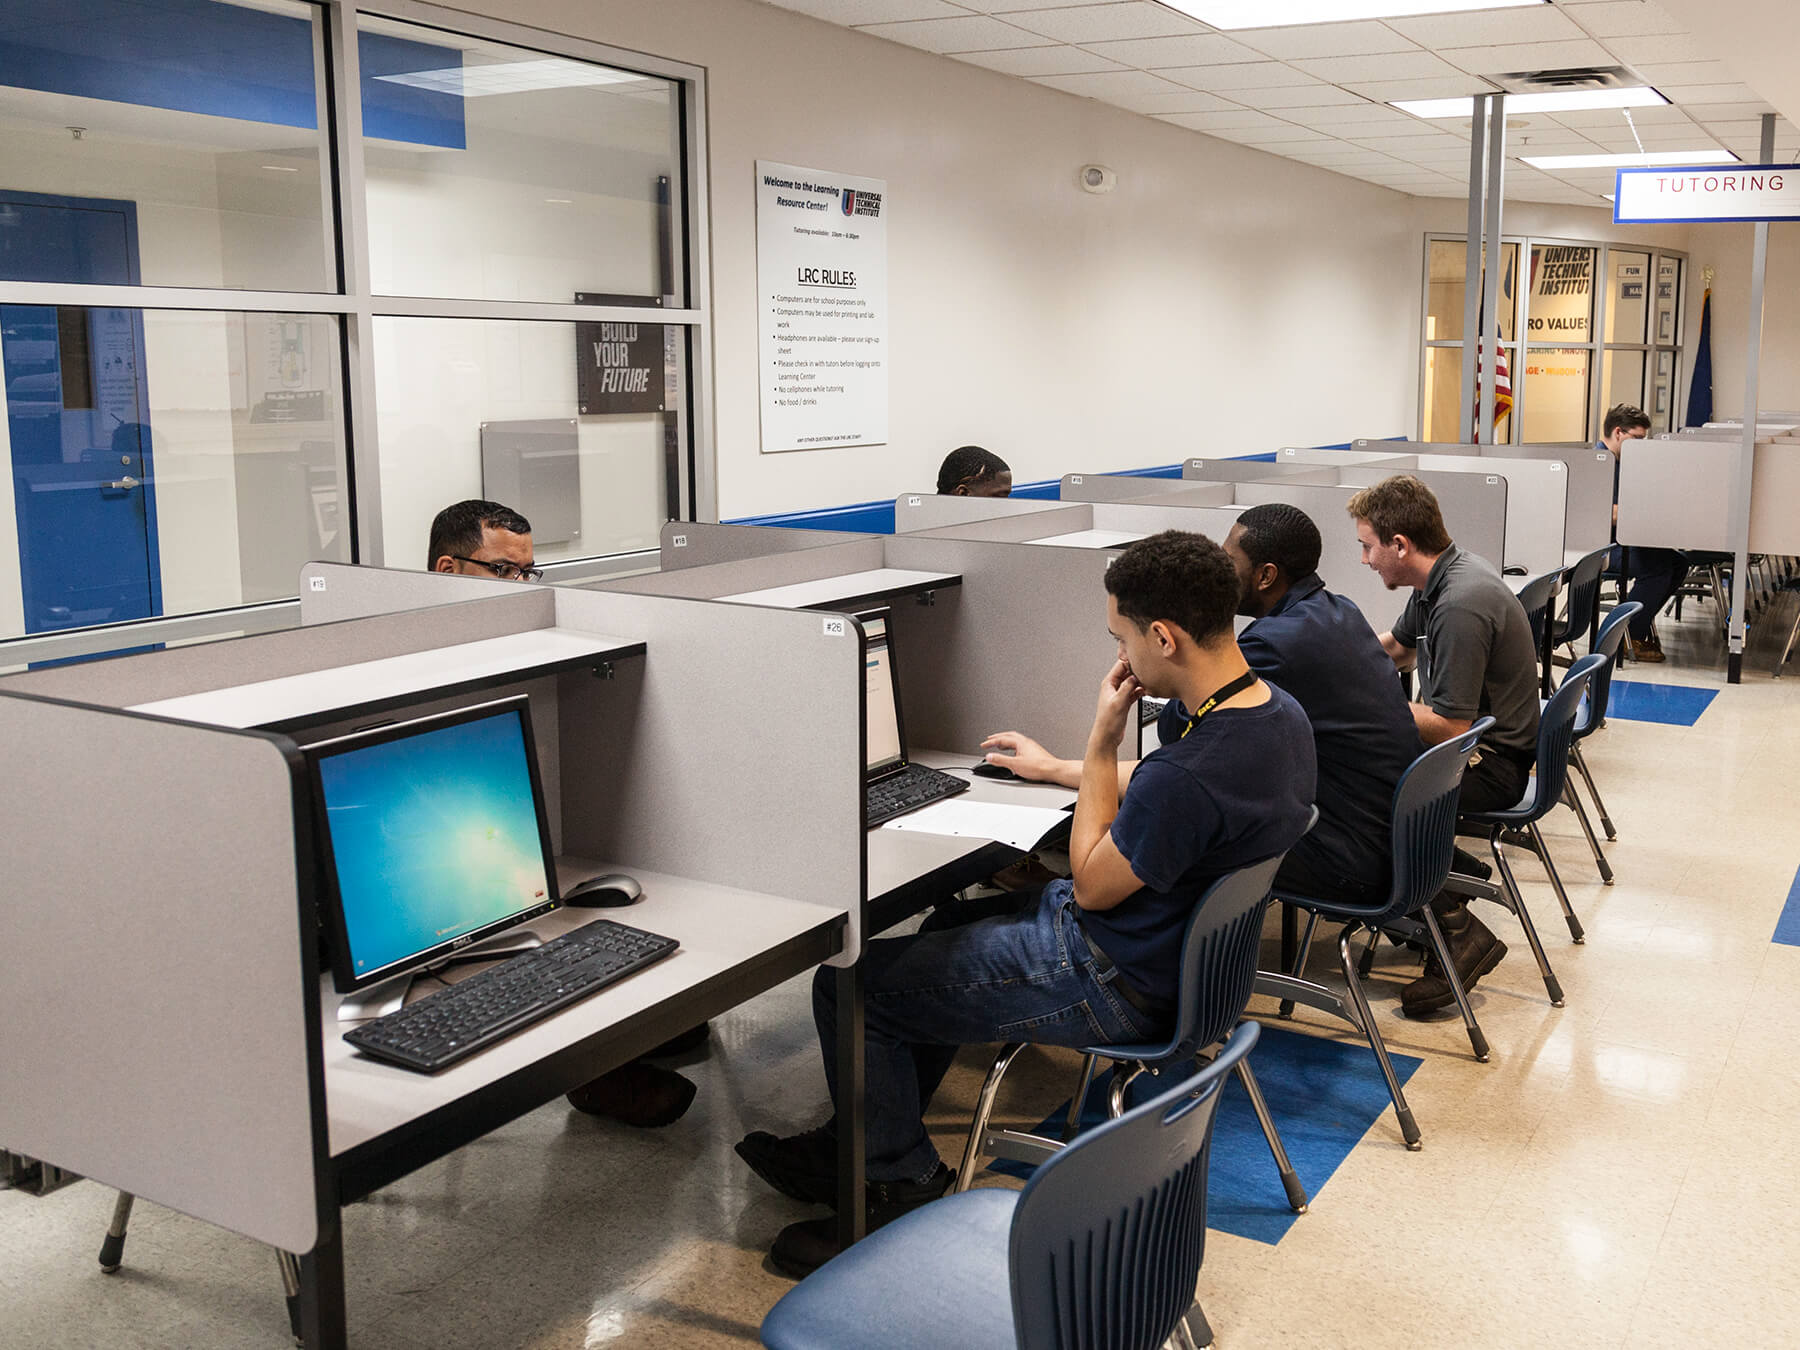 students working on a computer in the LRC classroom at the Exton campus